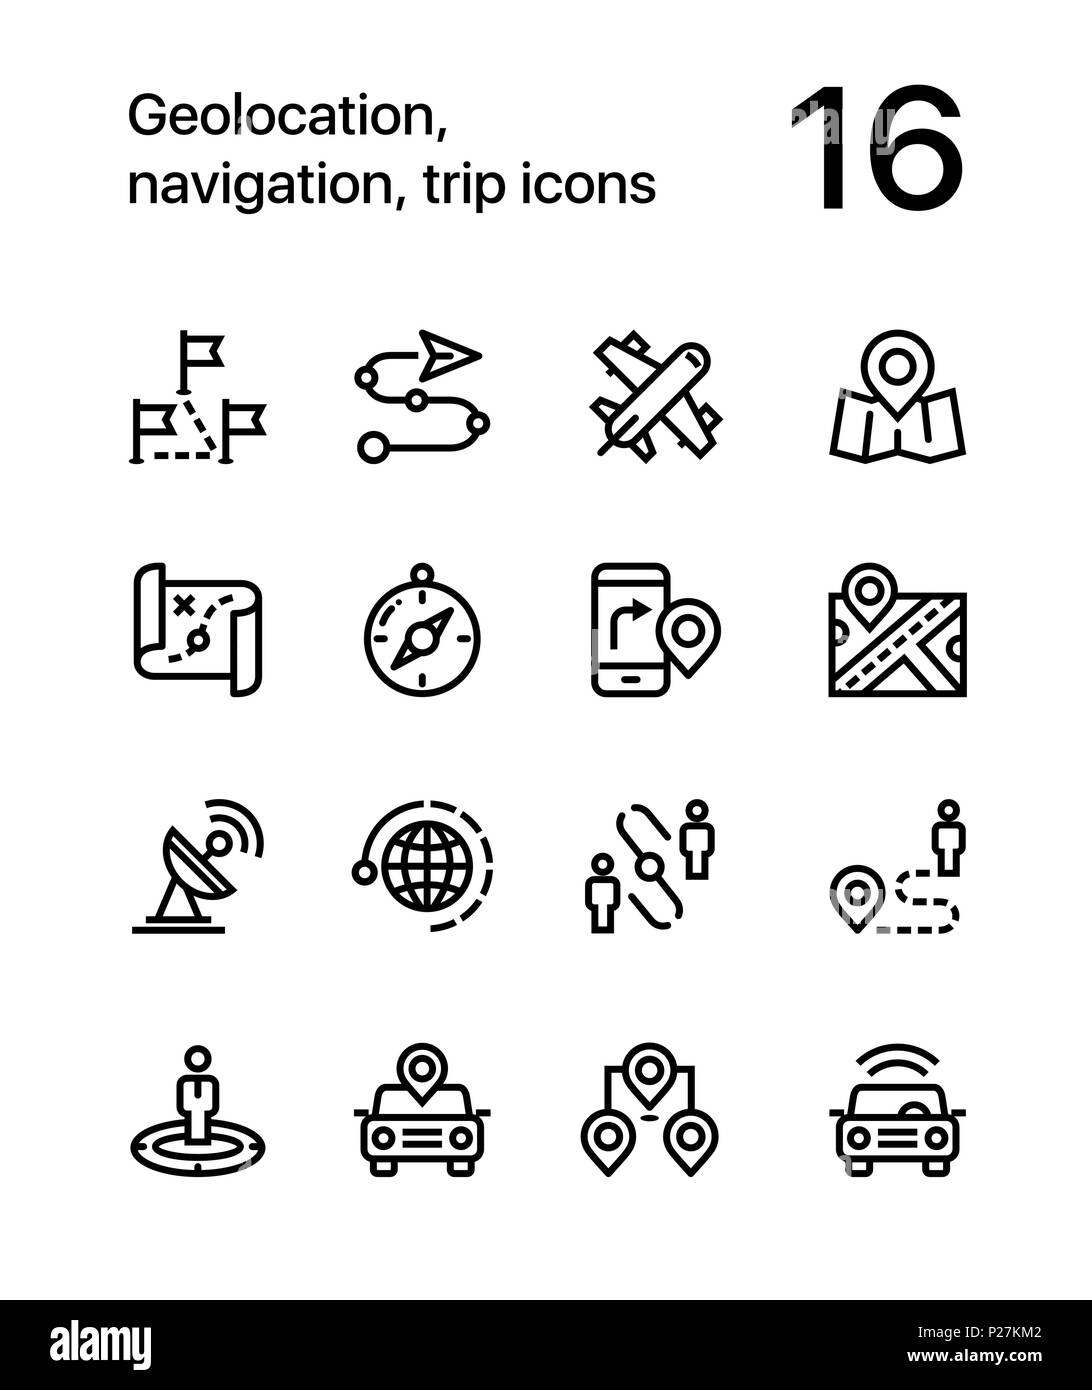 Geolocation, navigation, trip icons for web and mobile design pack 3 - Stock Vector